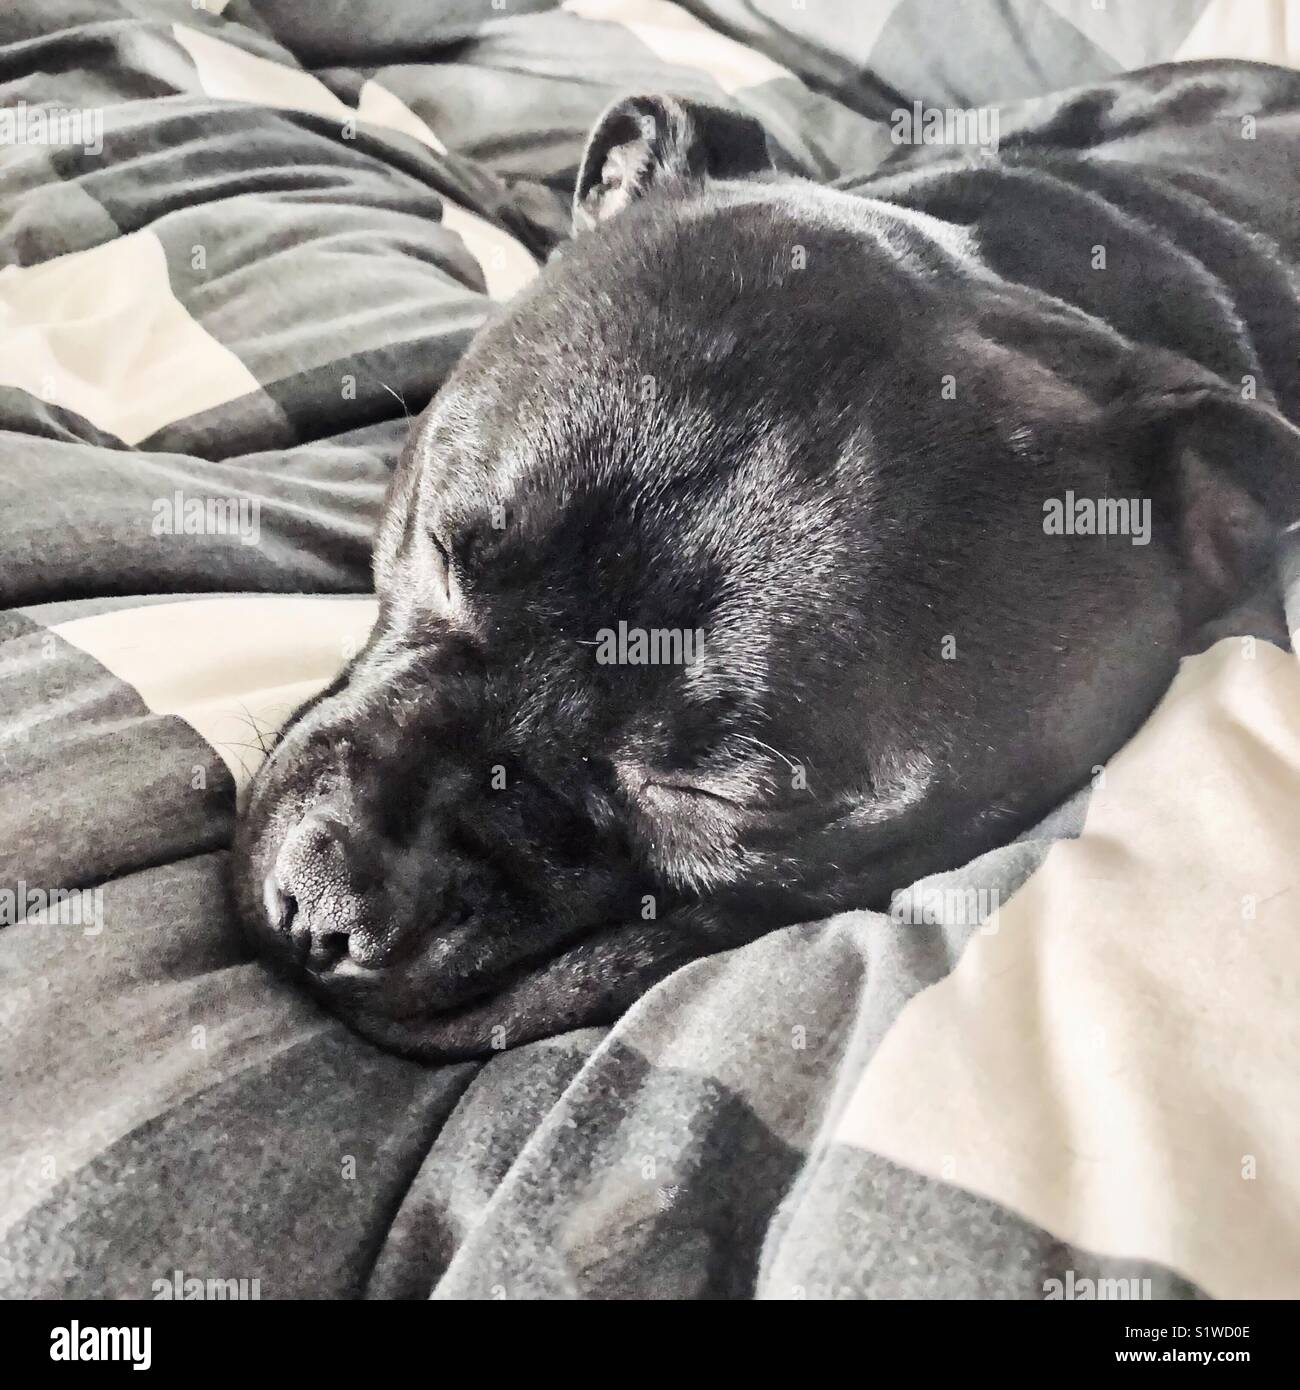 Sleeping black Staffordshire bull terrier dog on a thick black and white duvet - Stock Image